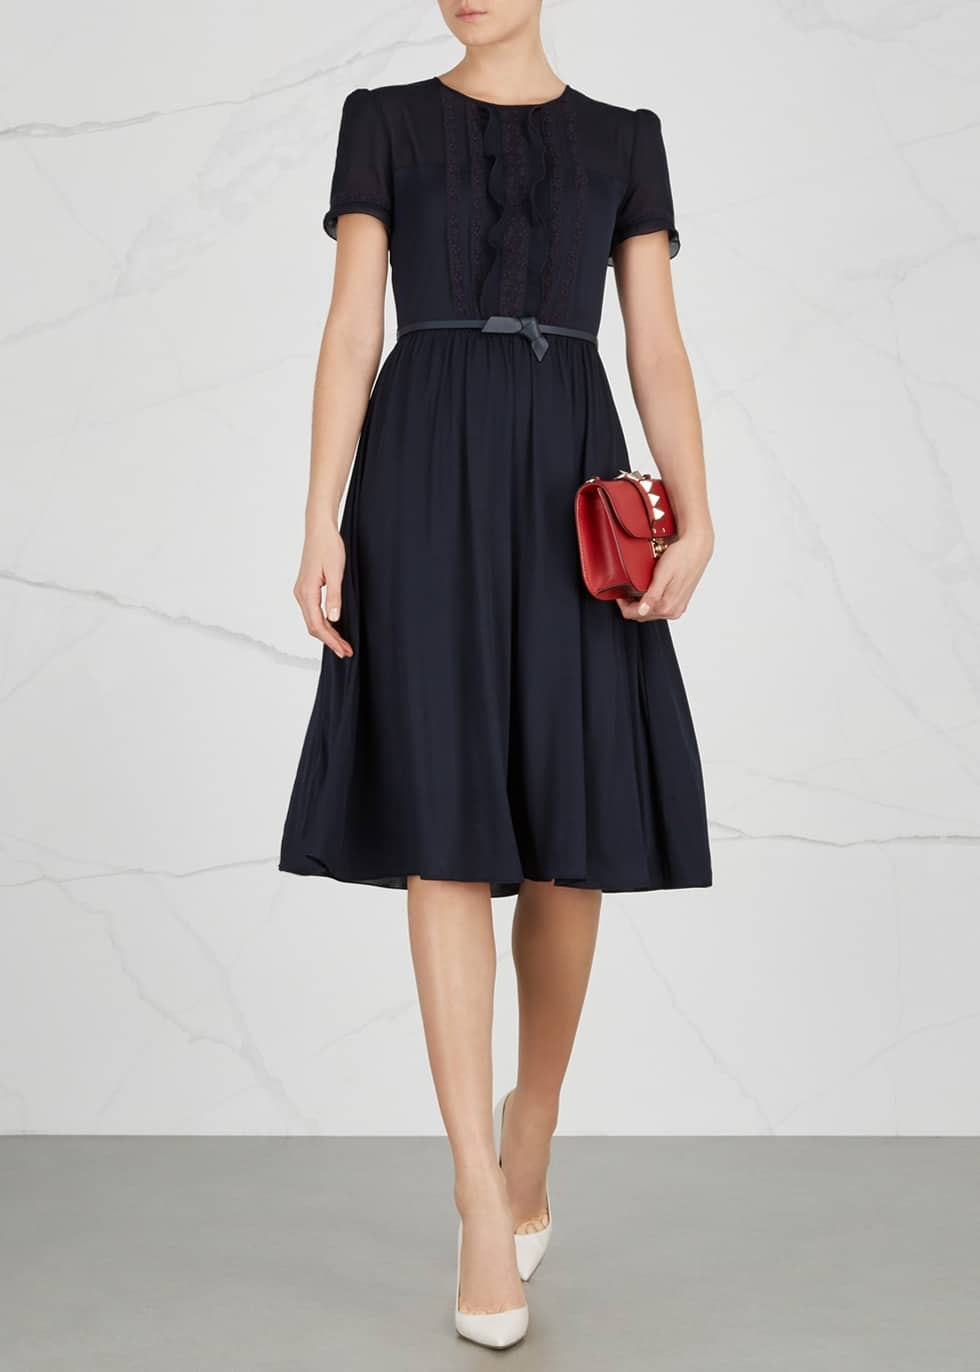 71f275bace MAX MARA STUDIO Picador Belted Jersey Navy Dress - We Select Dresses